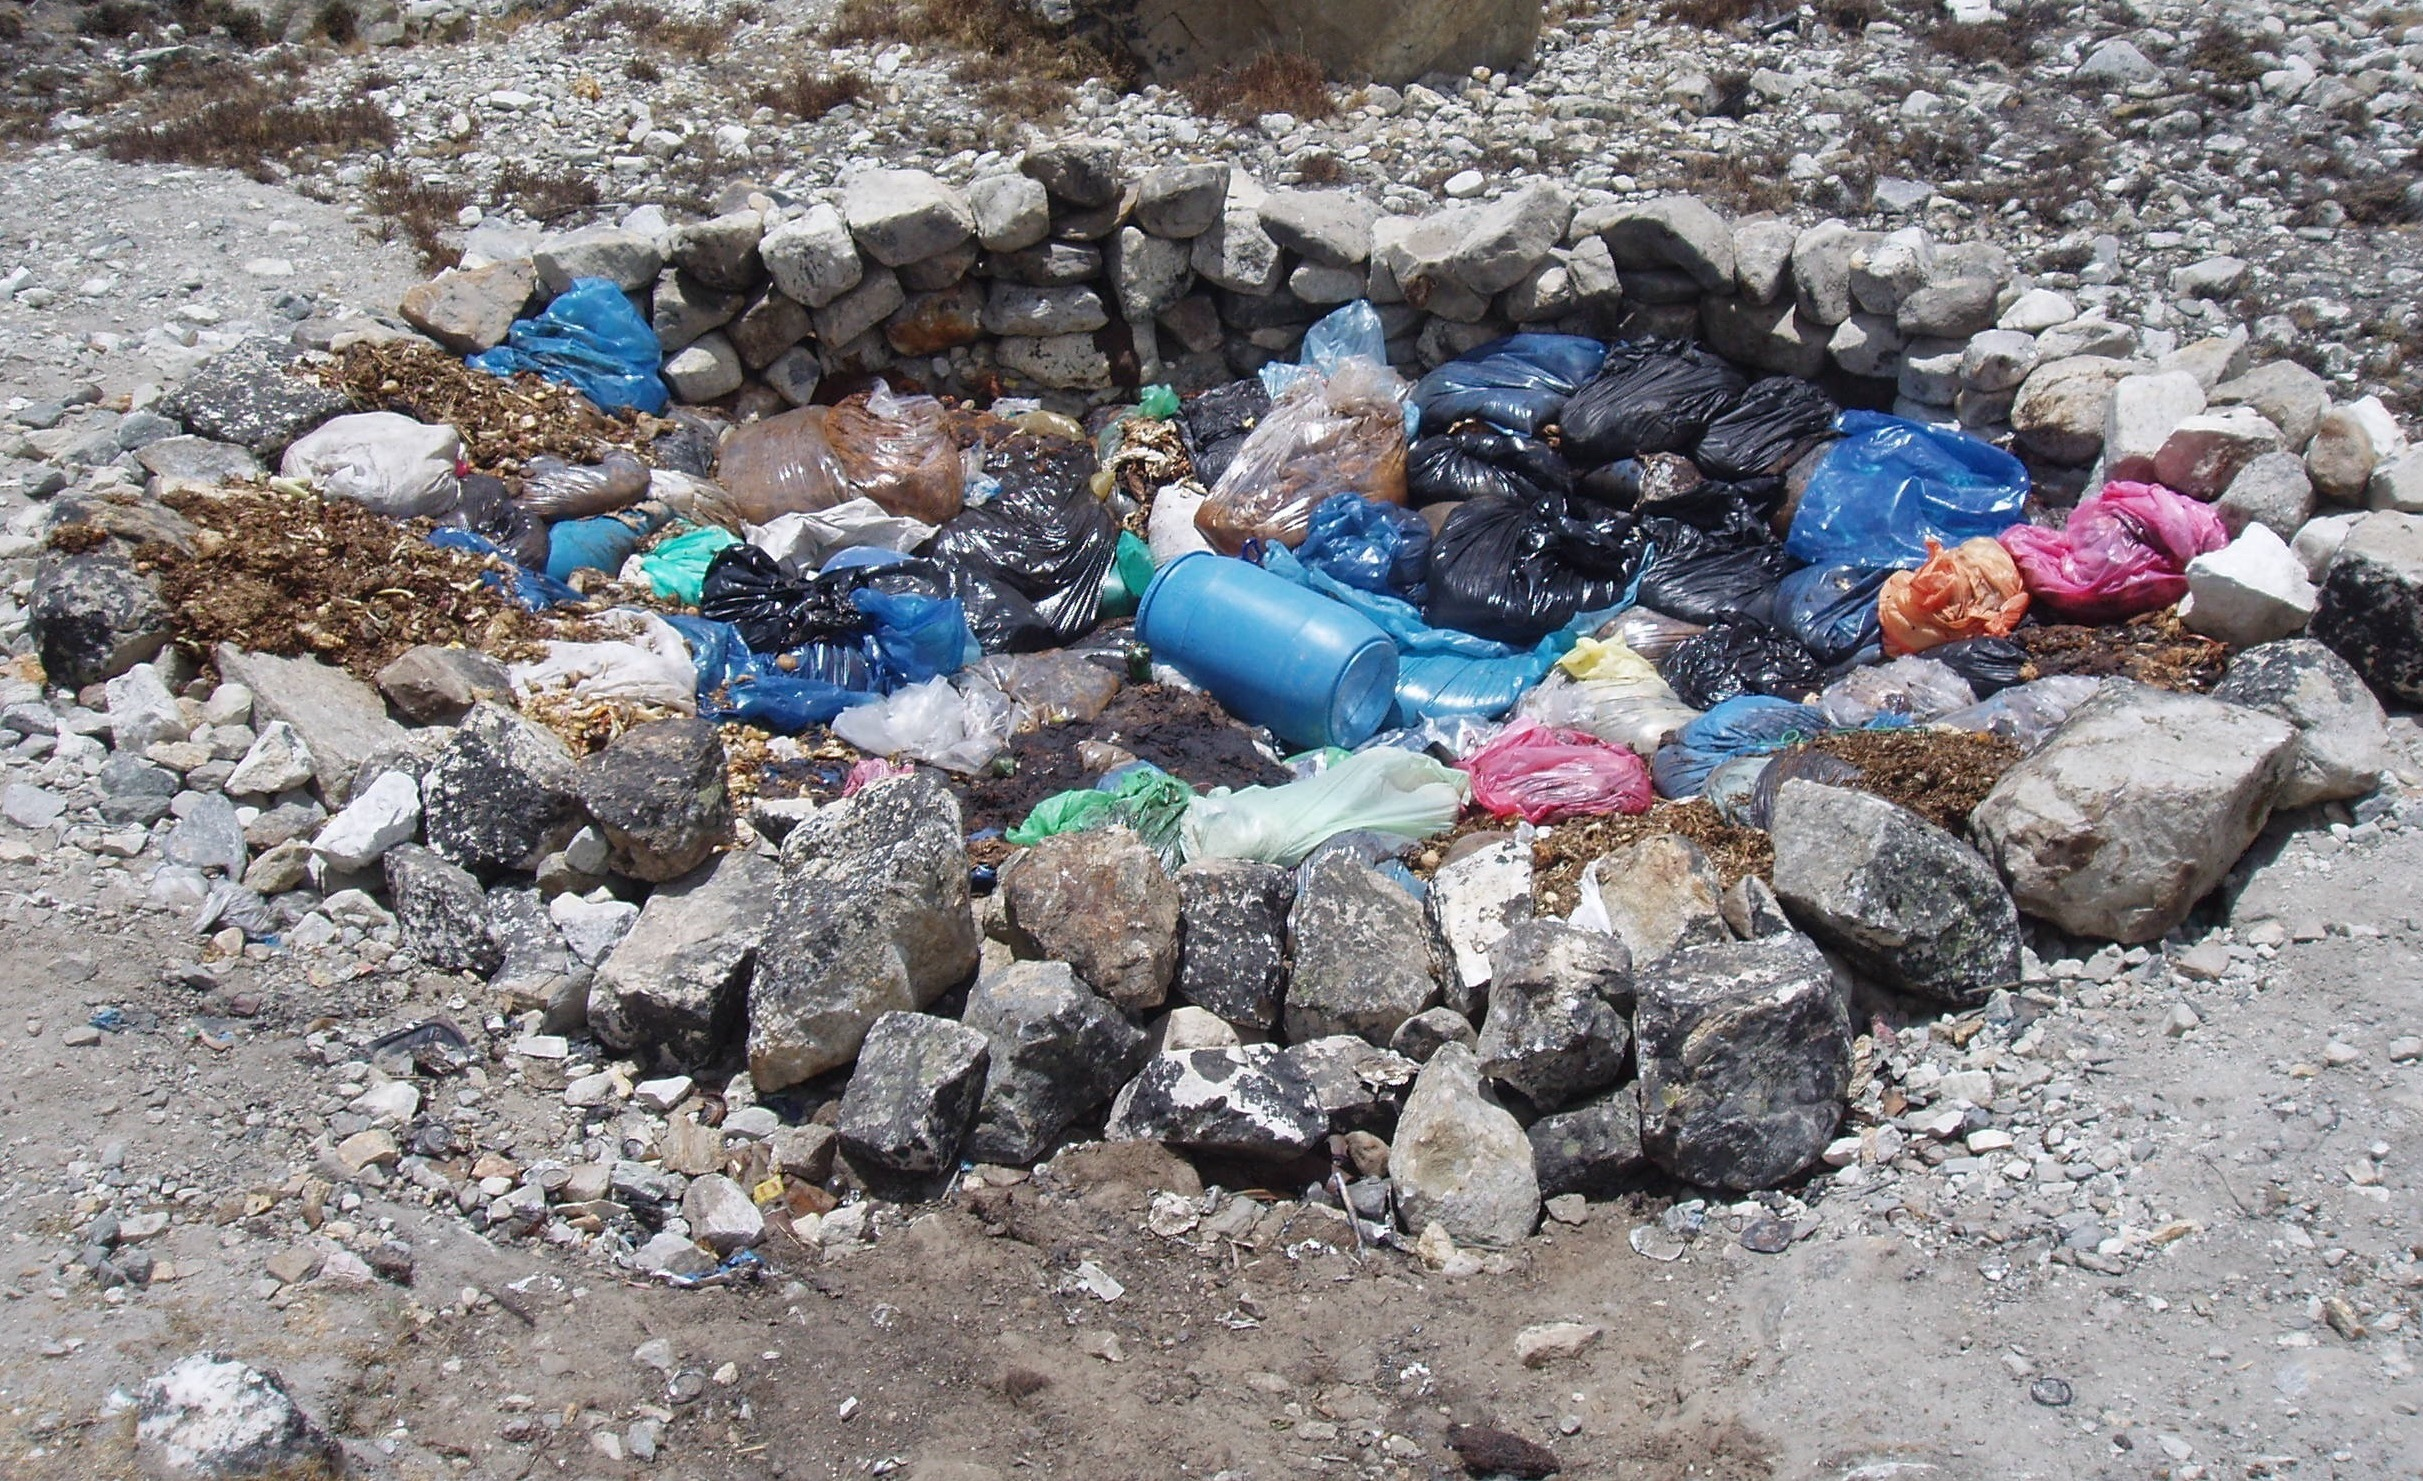 This image shows some of the human waste that litters Mount Everest.